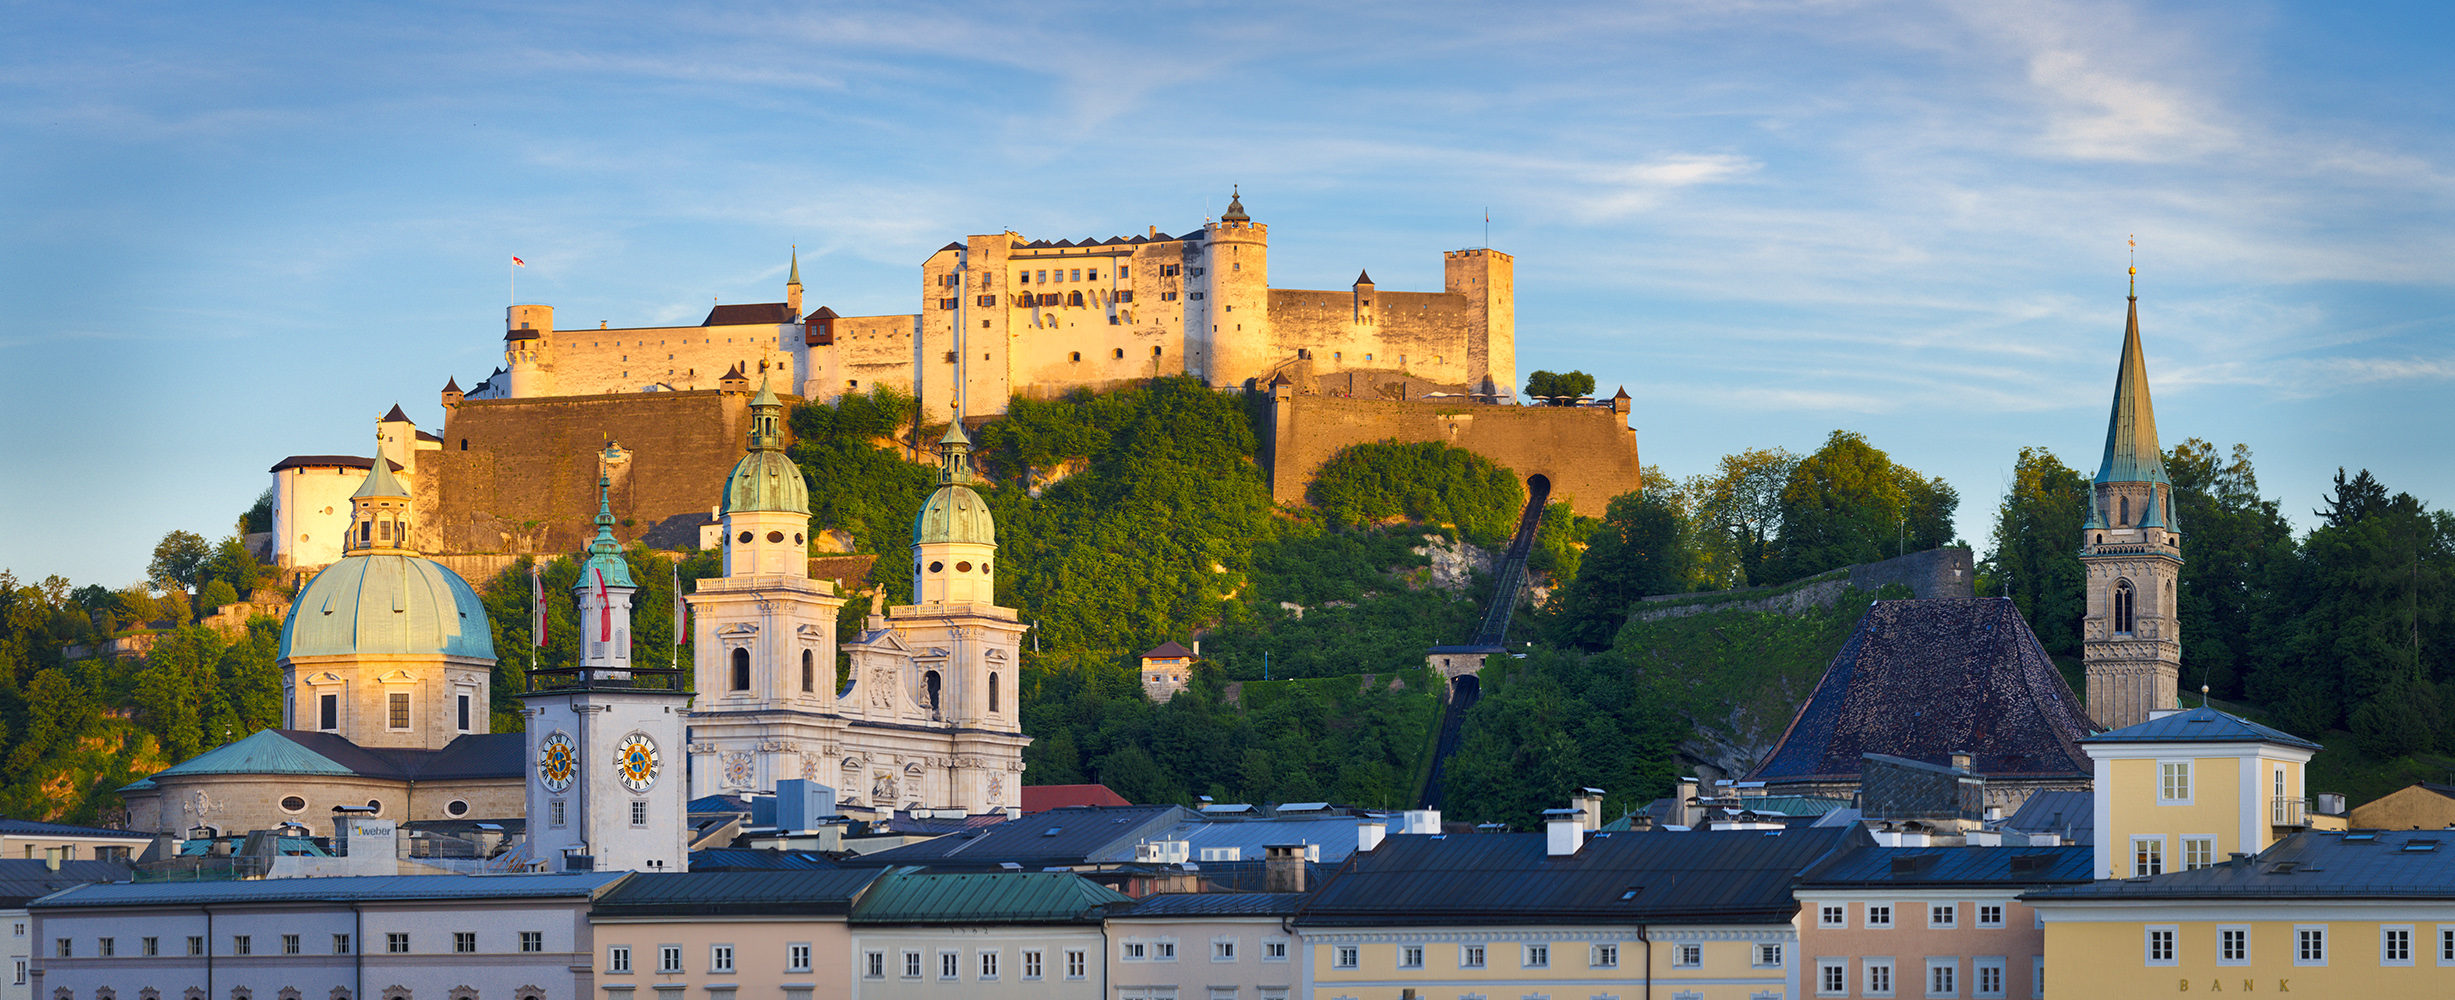 Location and Date: Salzburg, Austria; 28 May 2017  Tech Specs: 1/160s @ f/8.0. 165 mm @ ISO 200. 5 image panorama  Camera & Lens: Canon 5D Mark III; Canon EF 70-300mm f/4-5.6 IS USM